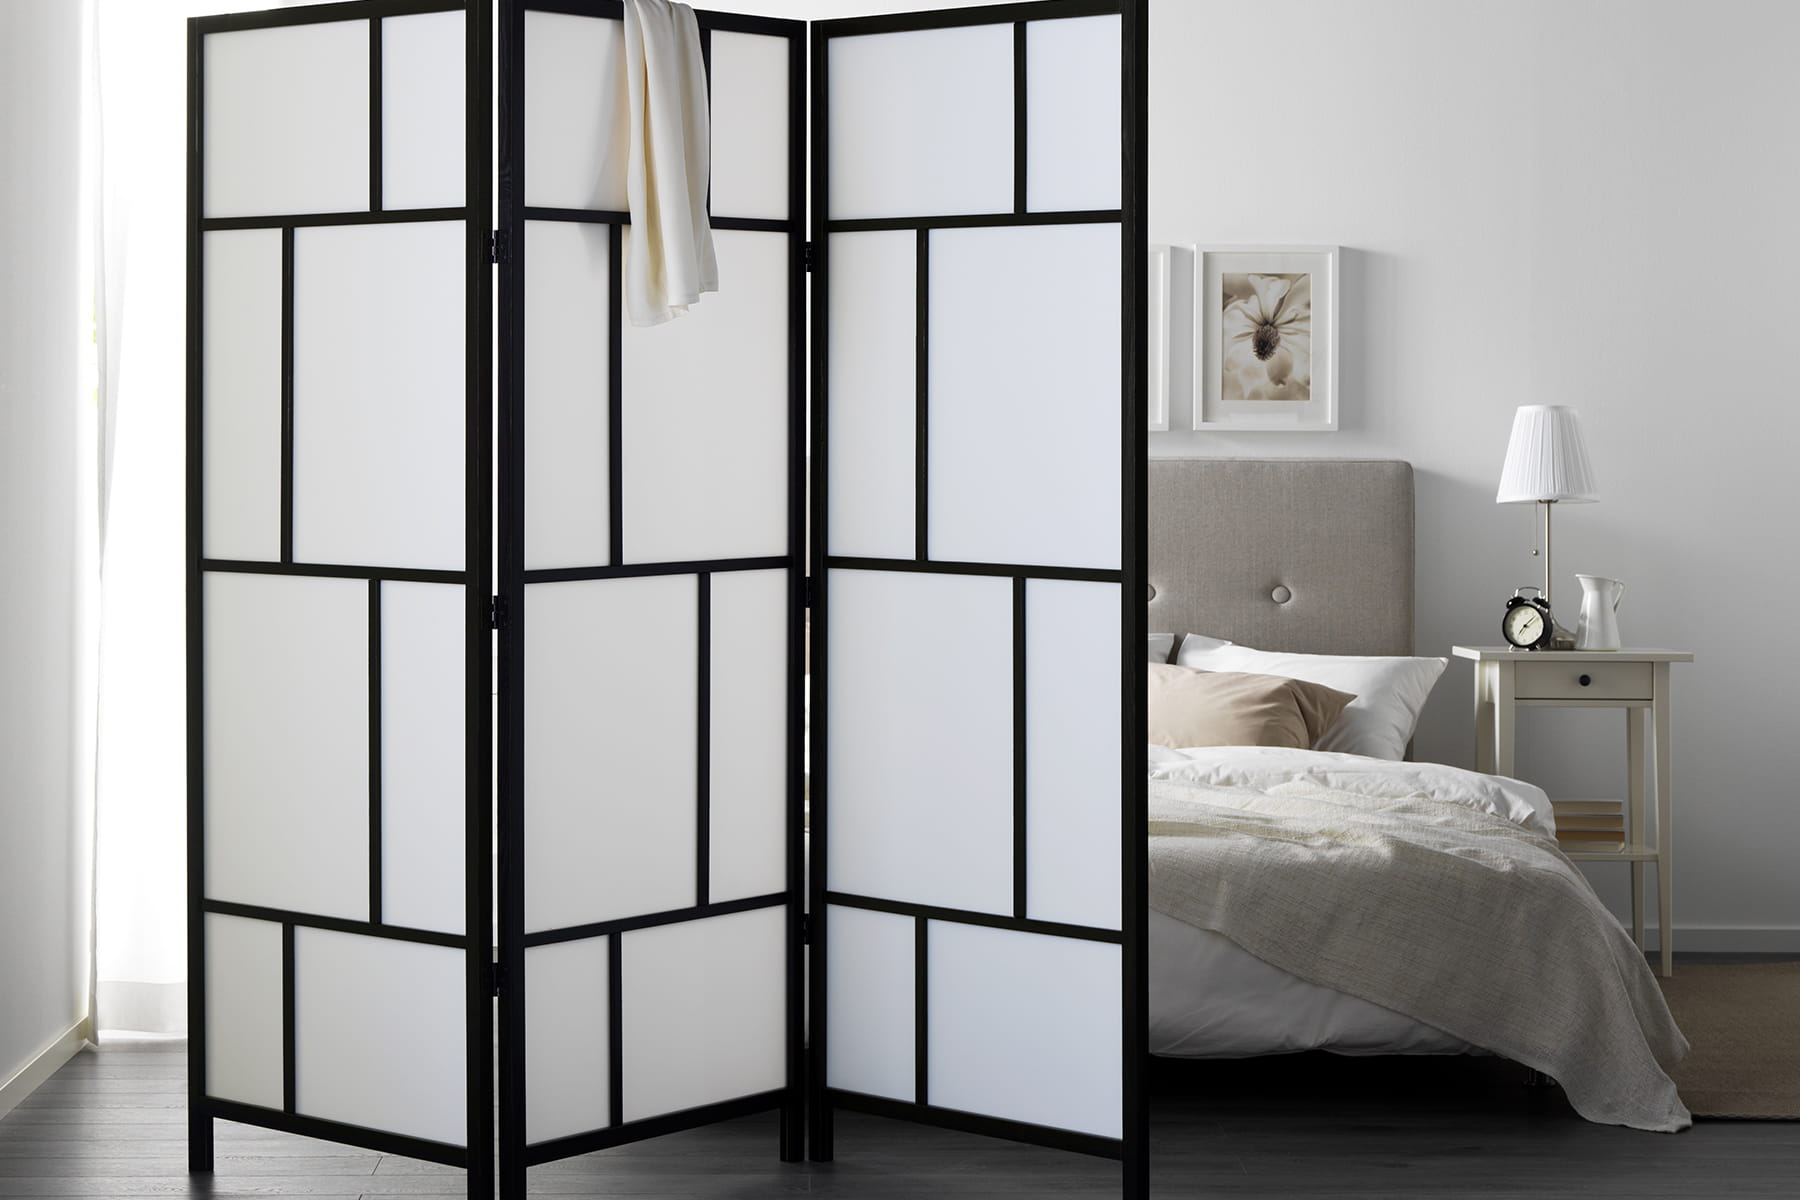 Paravent Chambre Pictures to pin on Pinterest